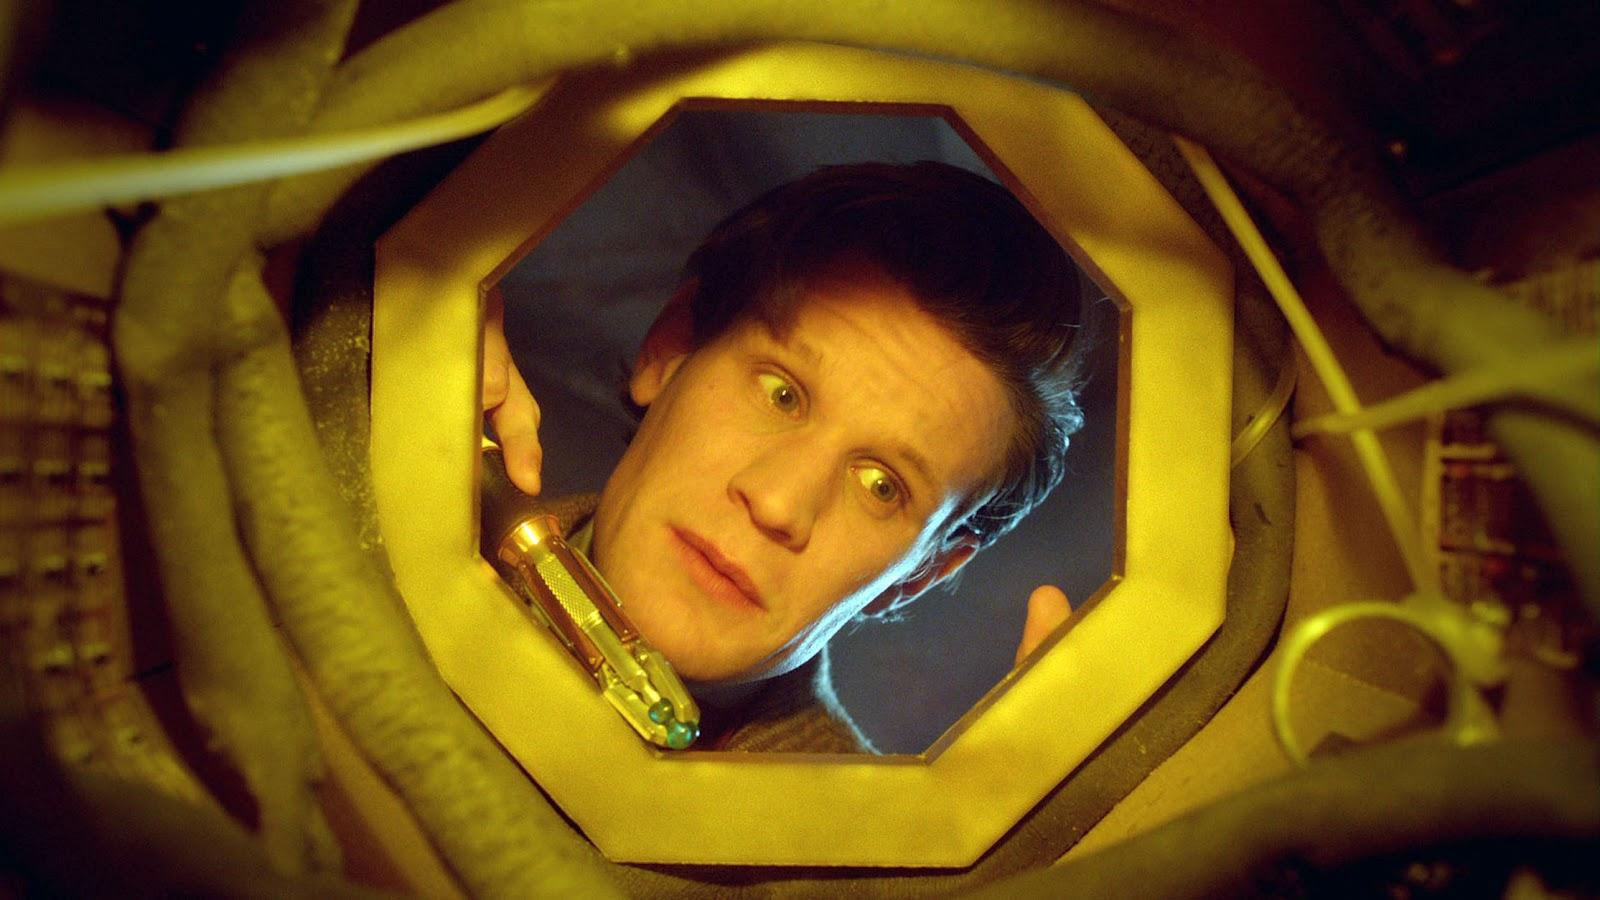 Doctor Who series 7: Dinosaurs on a Spaceship